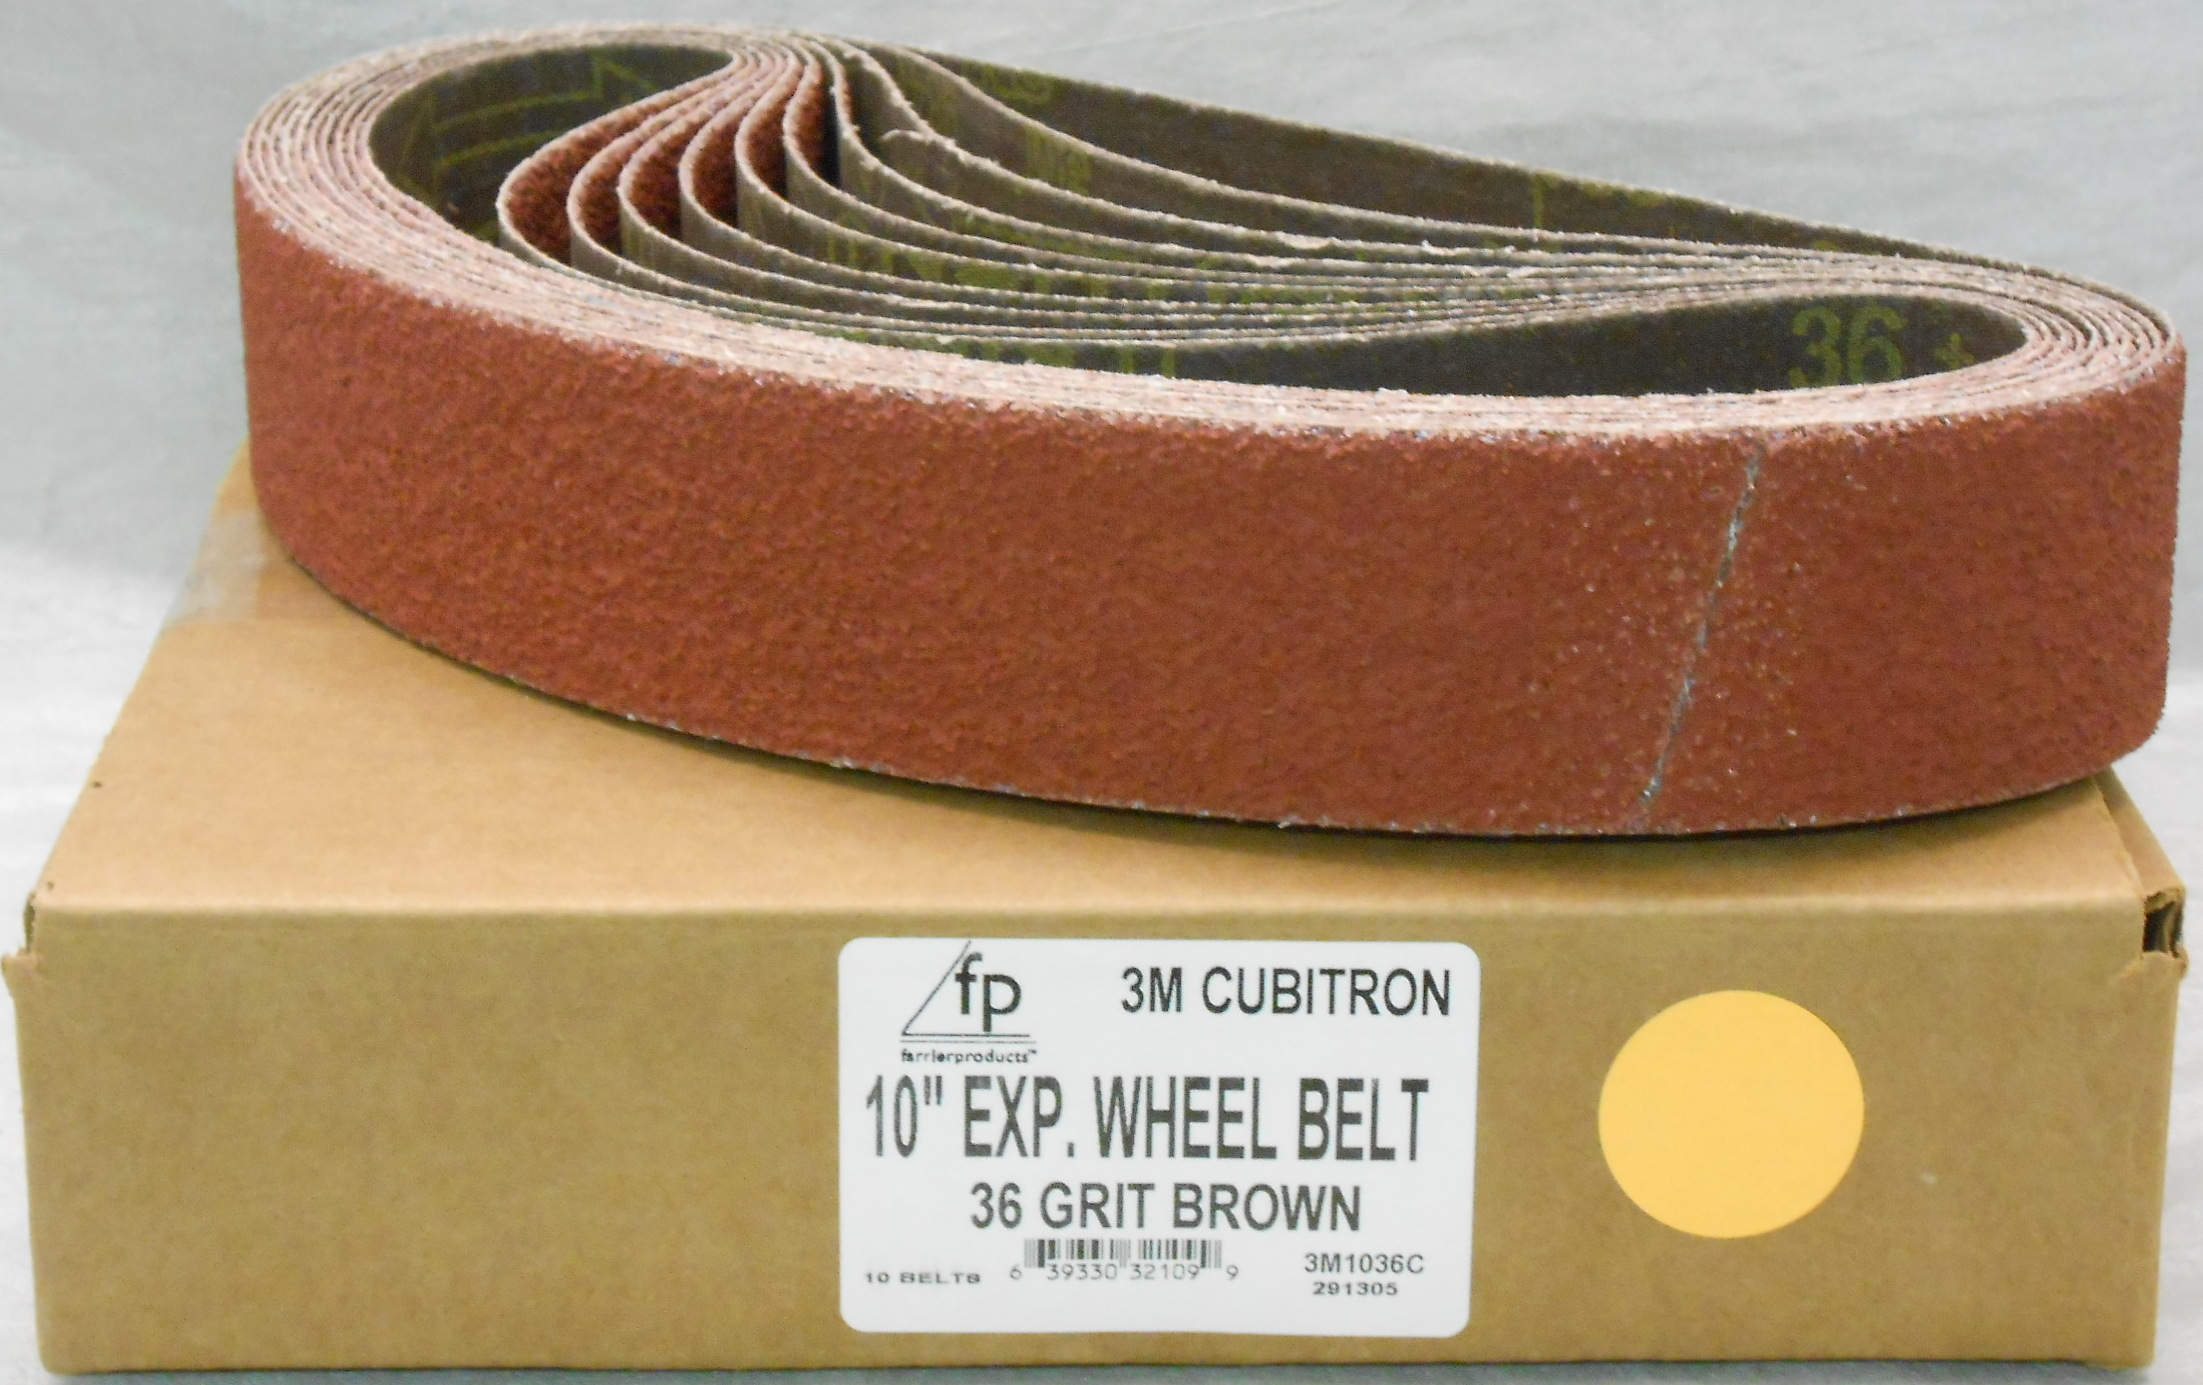 "FP 10"" Ex Wheel Belt 36 Grit Cubitron 3M - Box of 10"